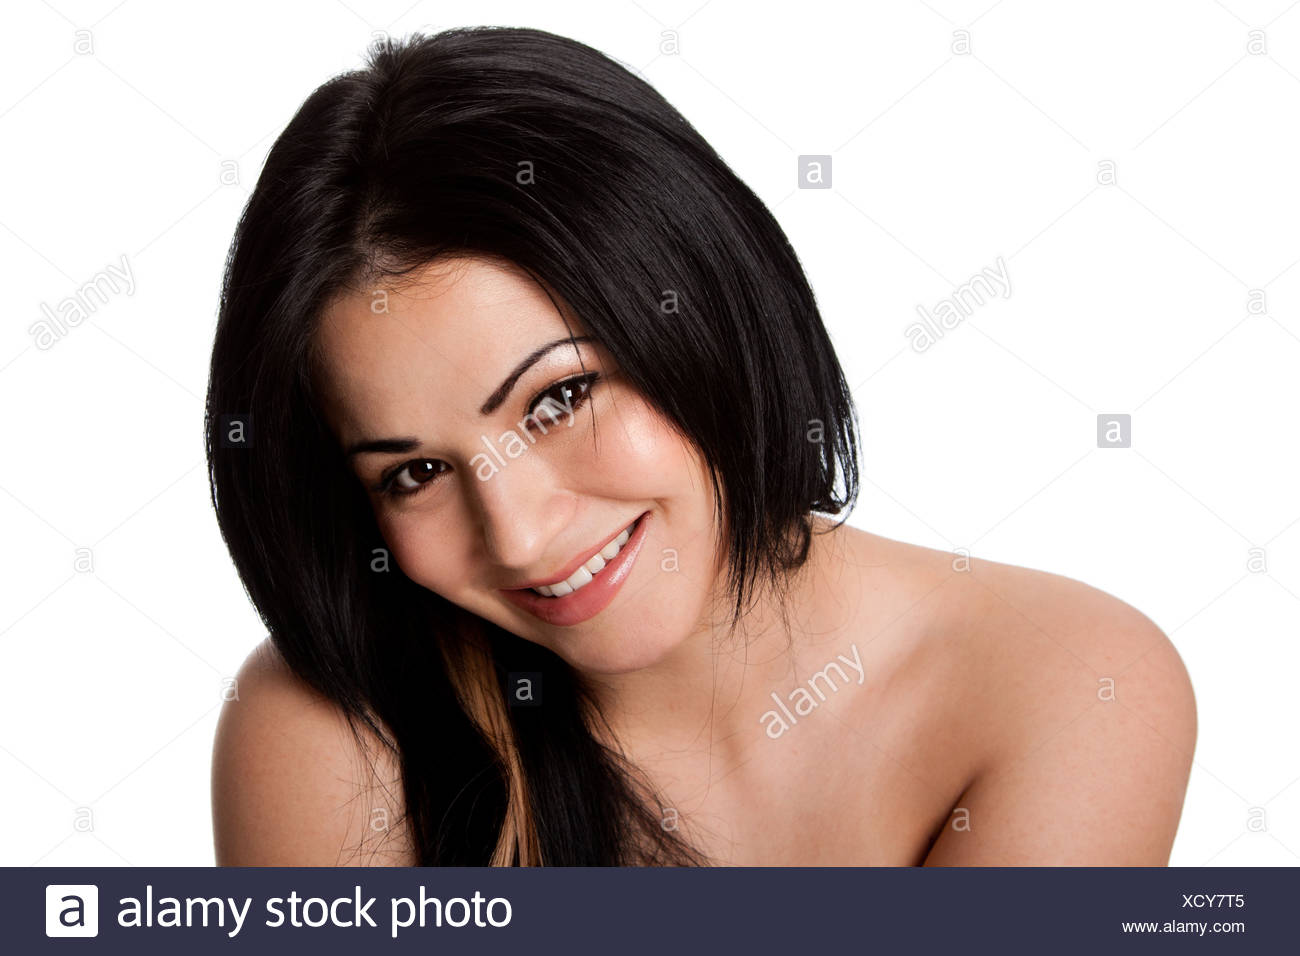 Beautiful attractive happy smiling young woman with perfect fair skin and long black hair, isolated. - Stock Image